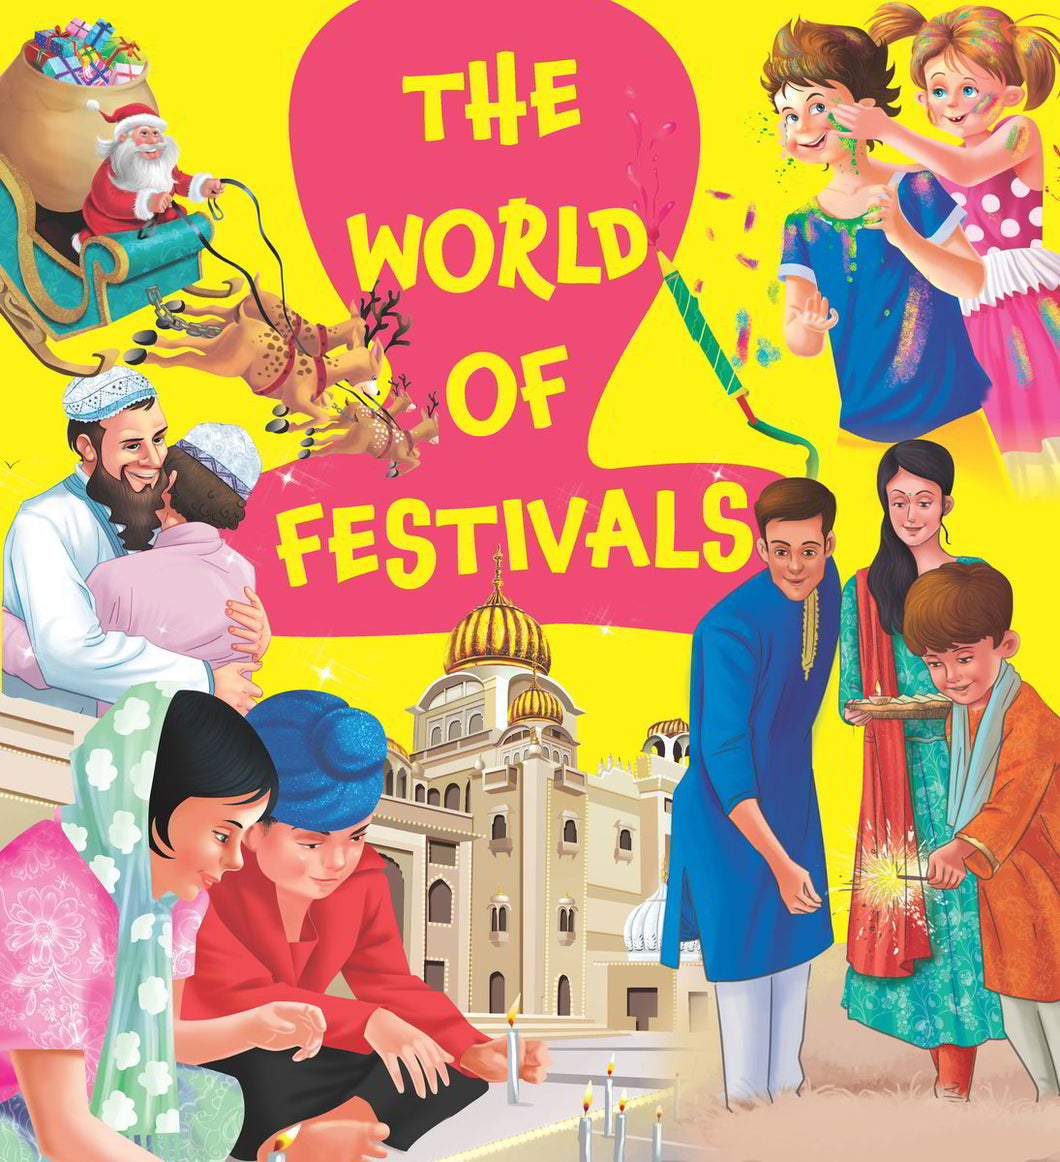 The World of Festivals